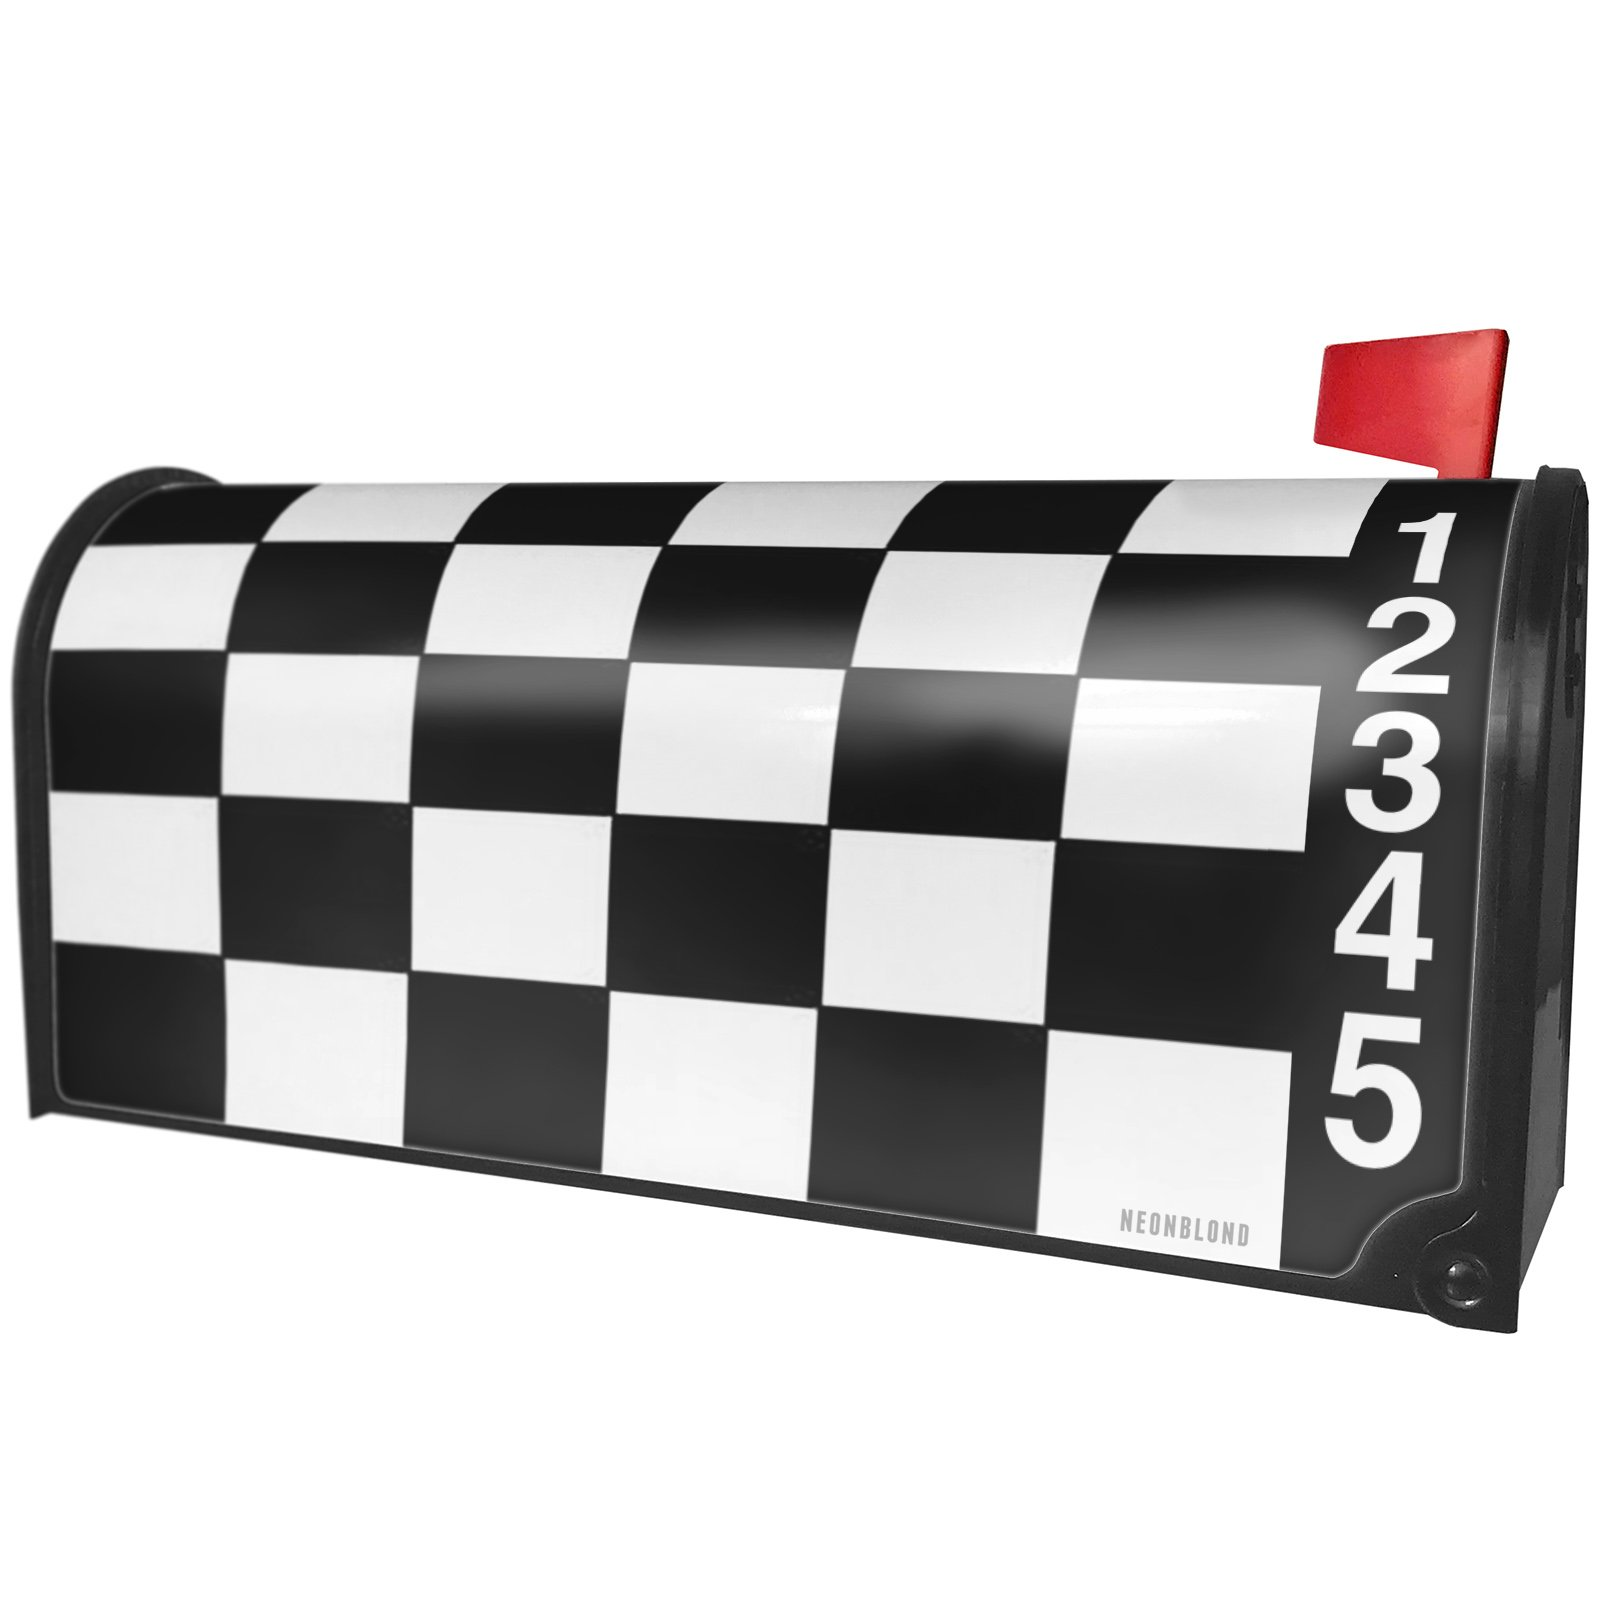 NEONBLOND Race Checker Flag Magnetic Mailbox Cover Custom Numbers